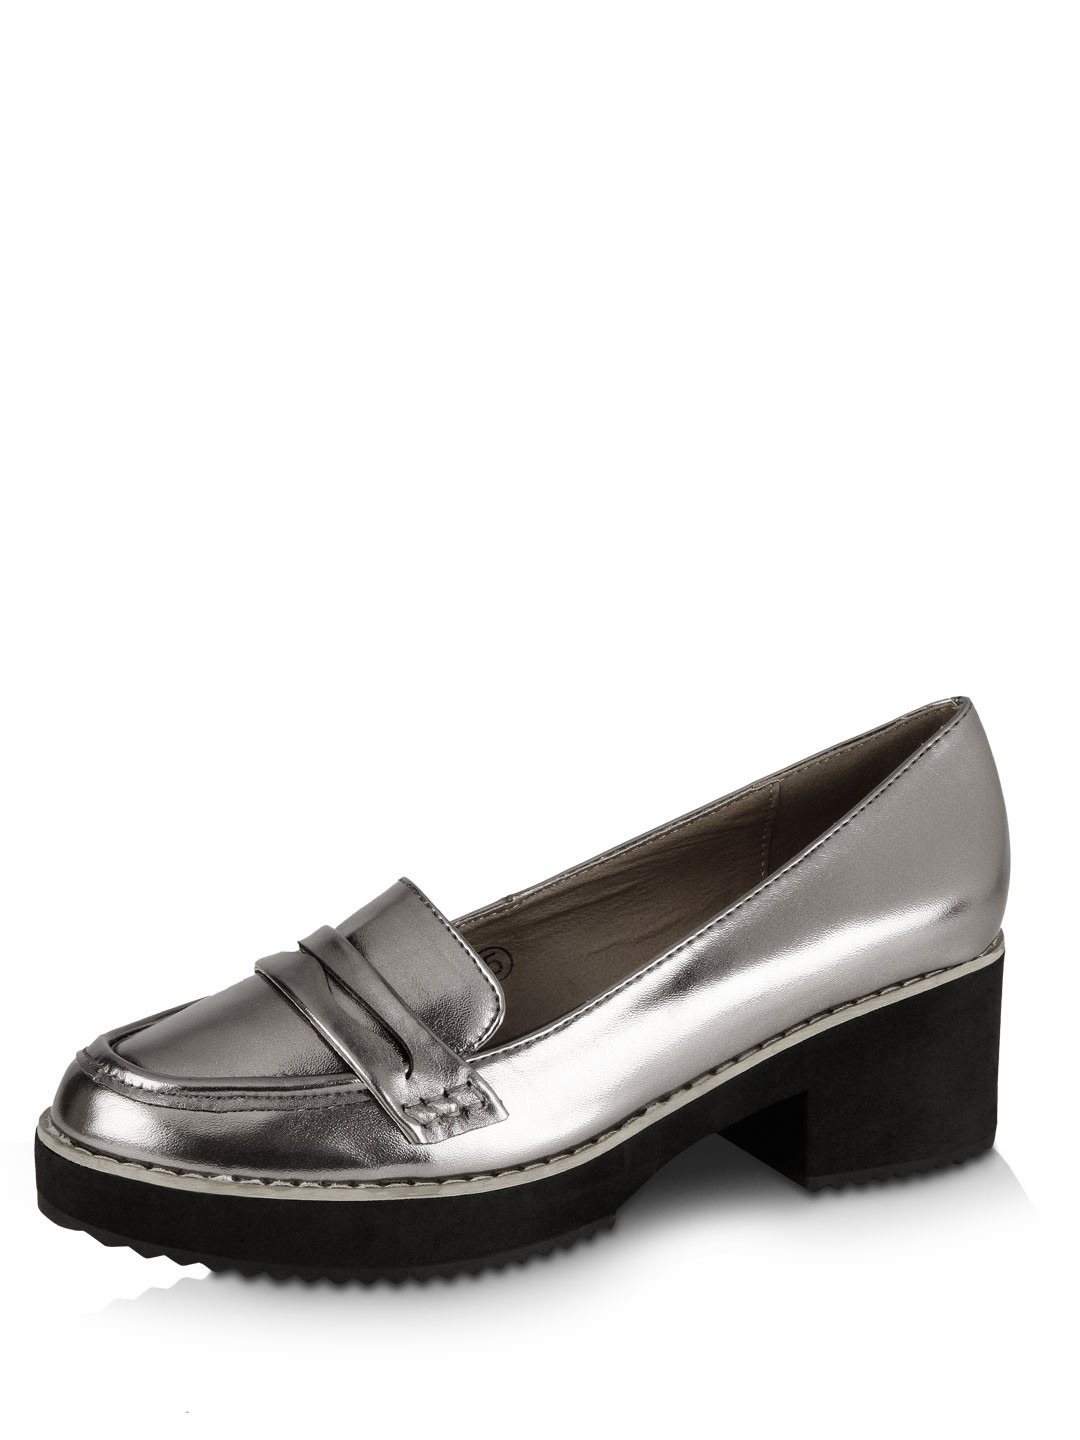 Heeled Loafer Shoes Women